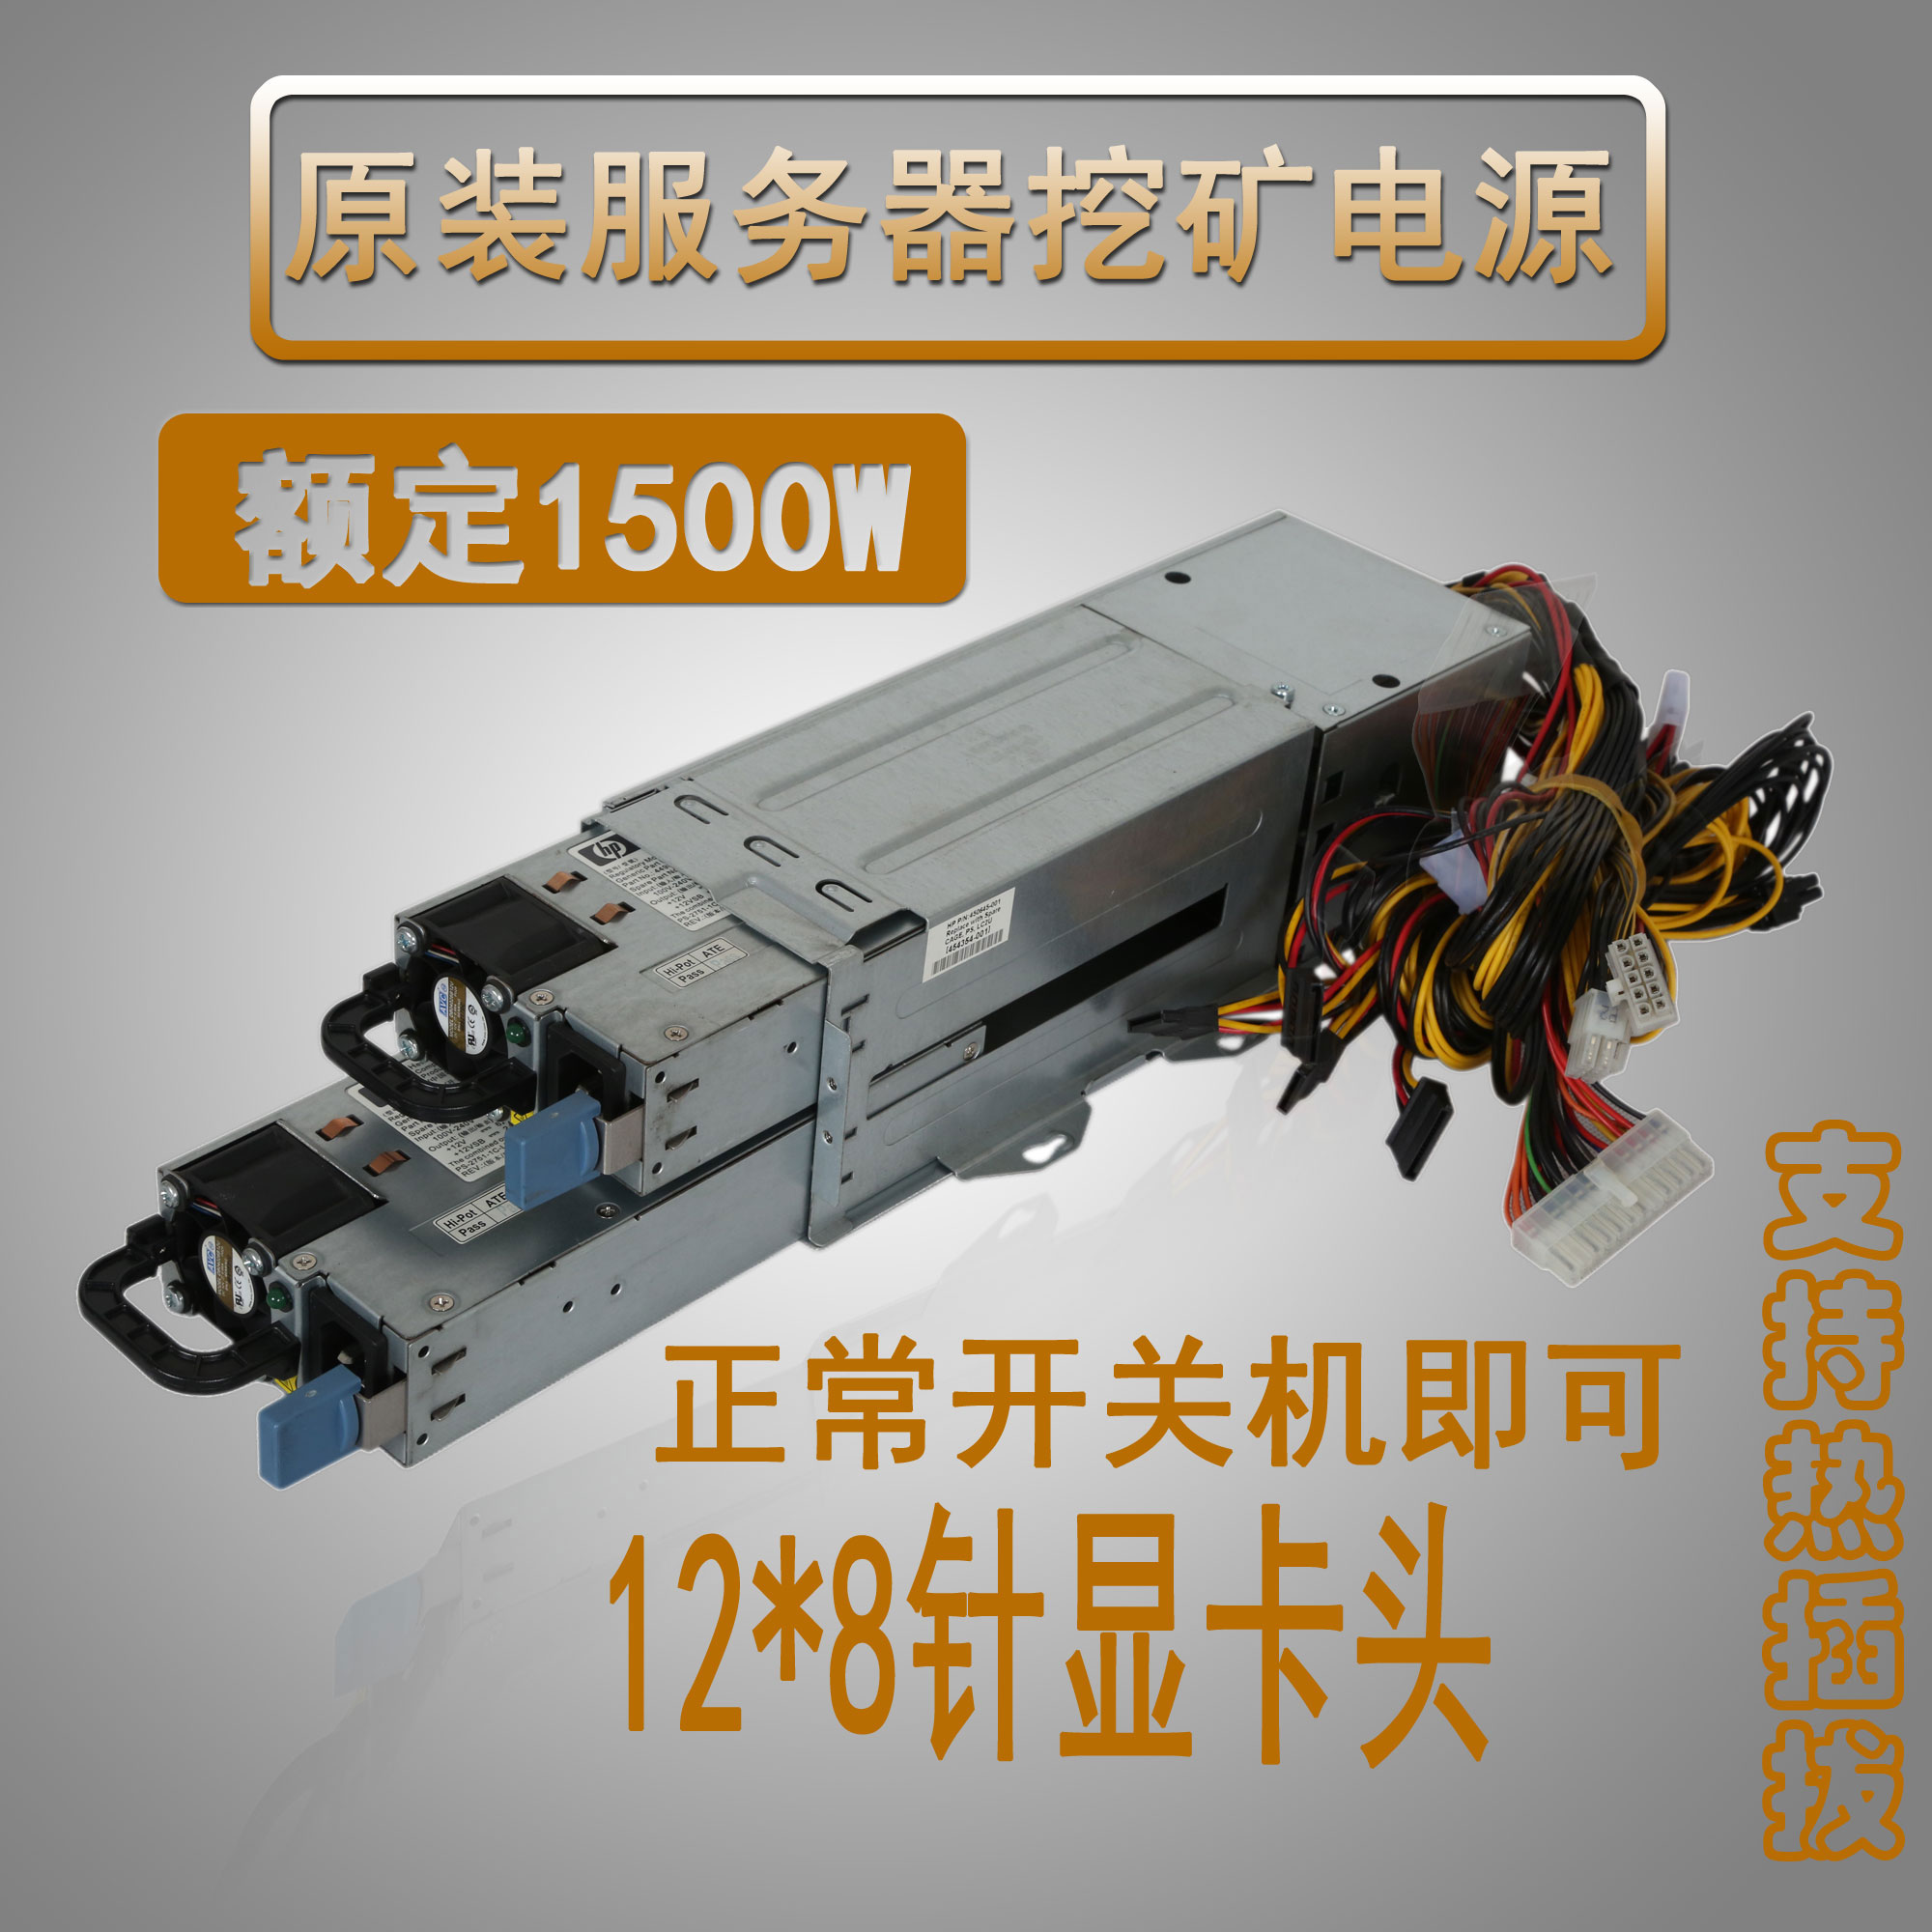 cheap Purchase china agnet Brand New Boxed HP DL380G5 Power Supply